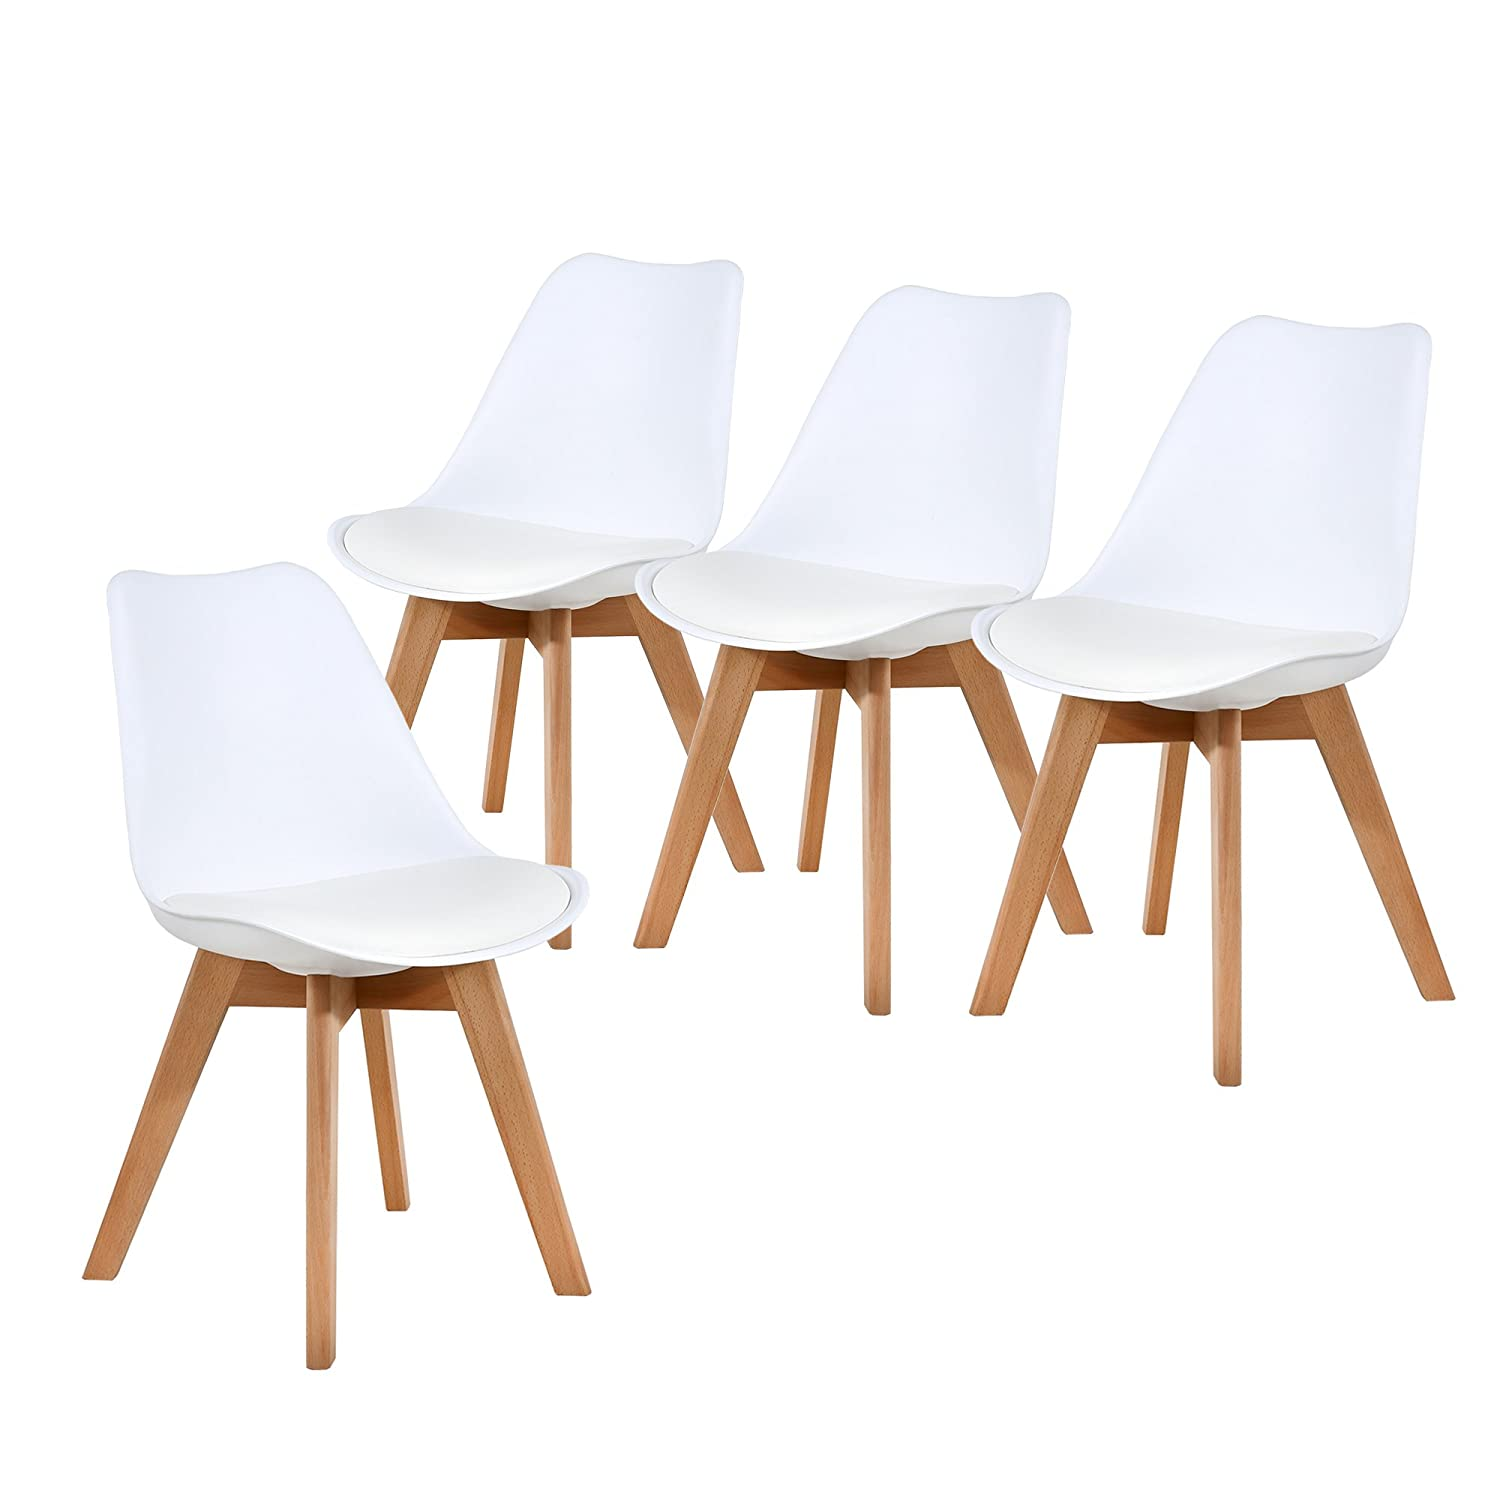 NOBPEINT Eames-Style Mid Century Dining Chairs Set of 4 White